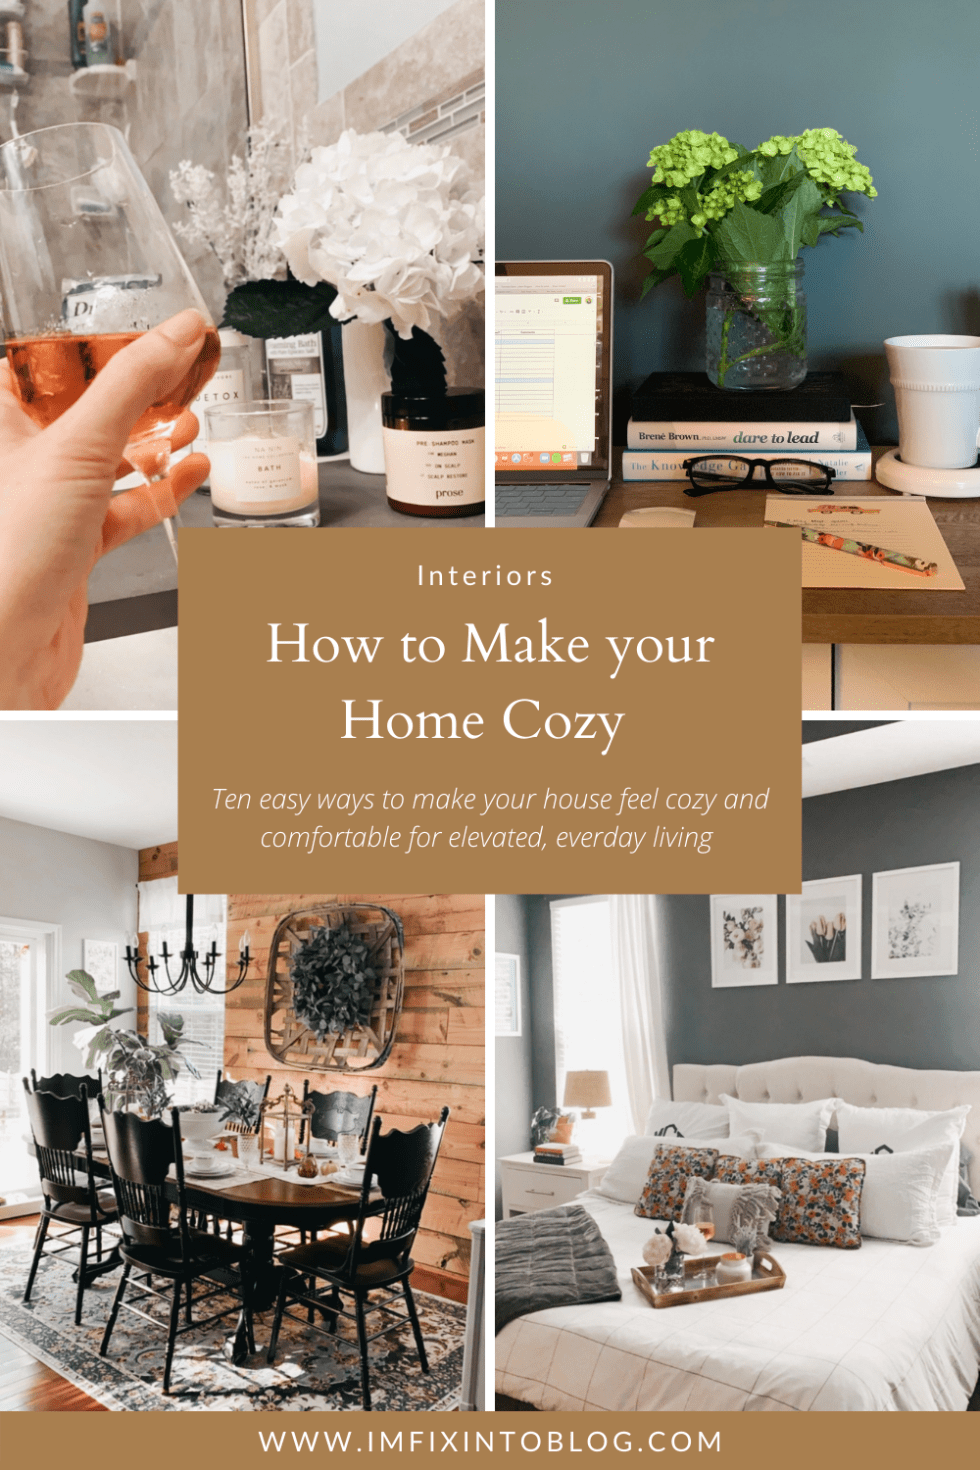 How to Make your Home Cozy: 10 Easy Ways - I'm Fixin' To - @imfixintoblog |How to Make Your Home Cozy by popular NC life and style blog, I'm Fixin' To: Pinterest image of different spaces in a home.